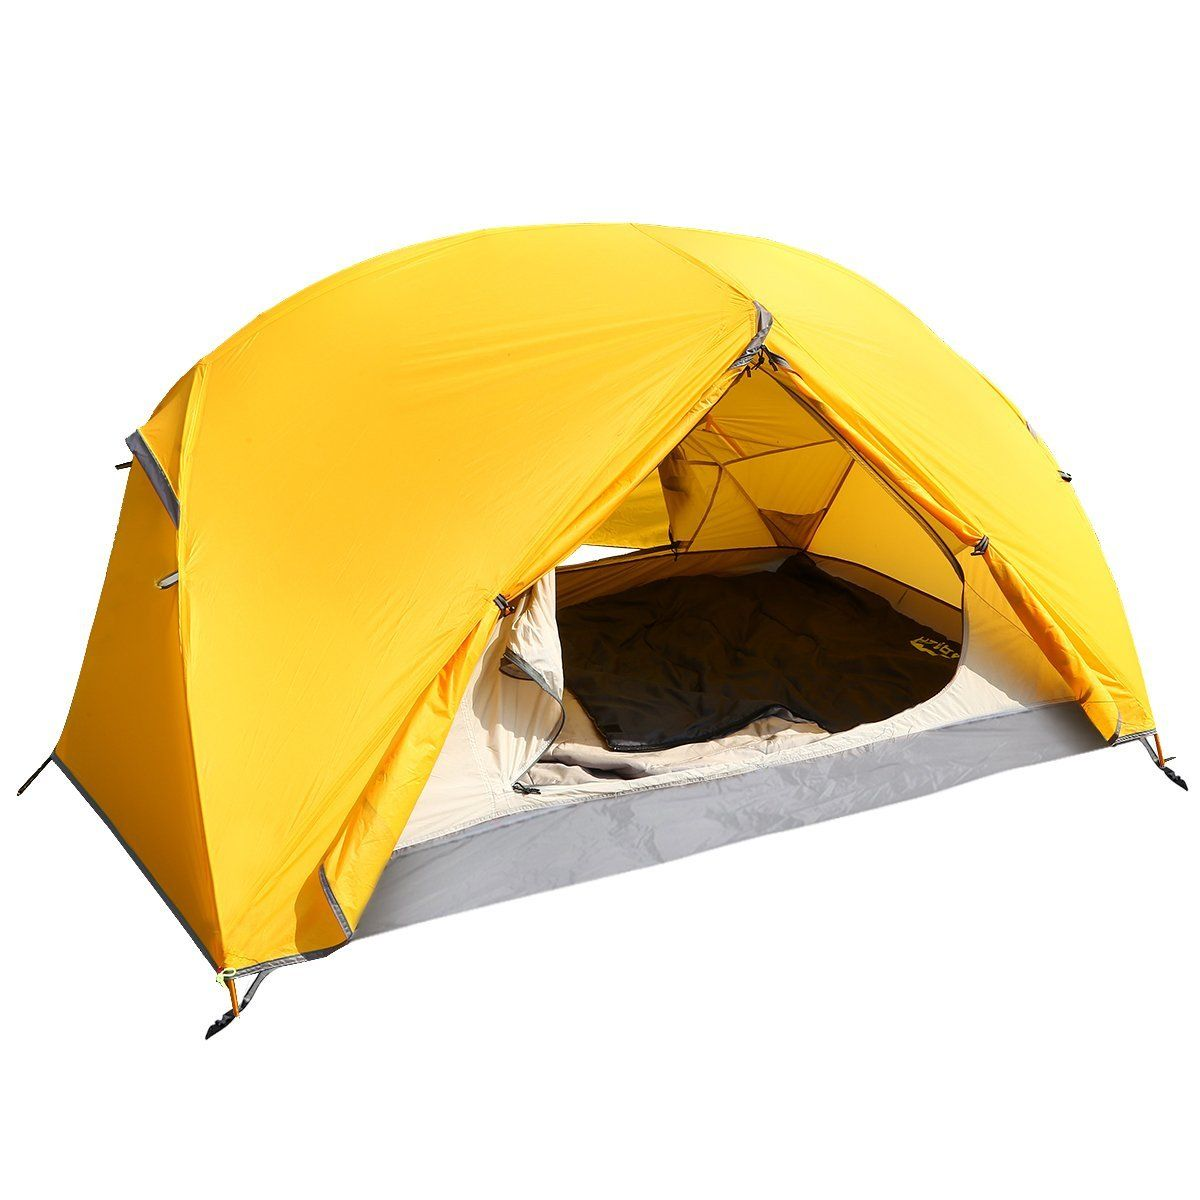 Lightweight Tent ARAER Person 4 Season Waterproof Compact Family Portable Double Layer C&ing Tent For C&ing Hiking Travel Climbing Picnic Yellow  sc 1 st  Pinterest & Lightweight Tent ARAER 2-3 Person 4 Season Waterproof Compact ...